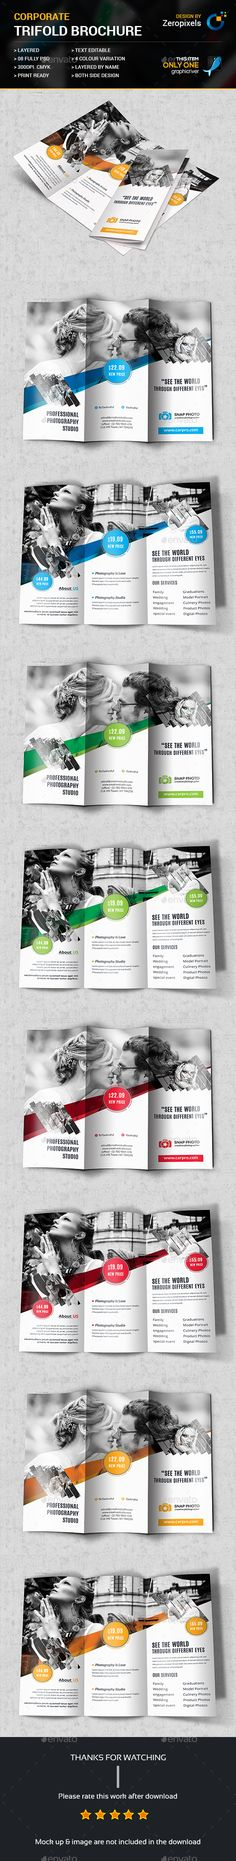 Photography Tri-Fold Brochure Template PSD. Download here: https://graphicriver.net/item/photography-trifold-brochure/17259613?ref=ksioks